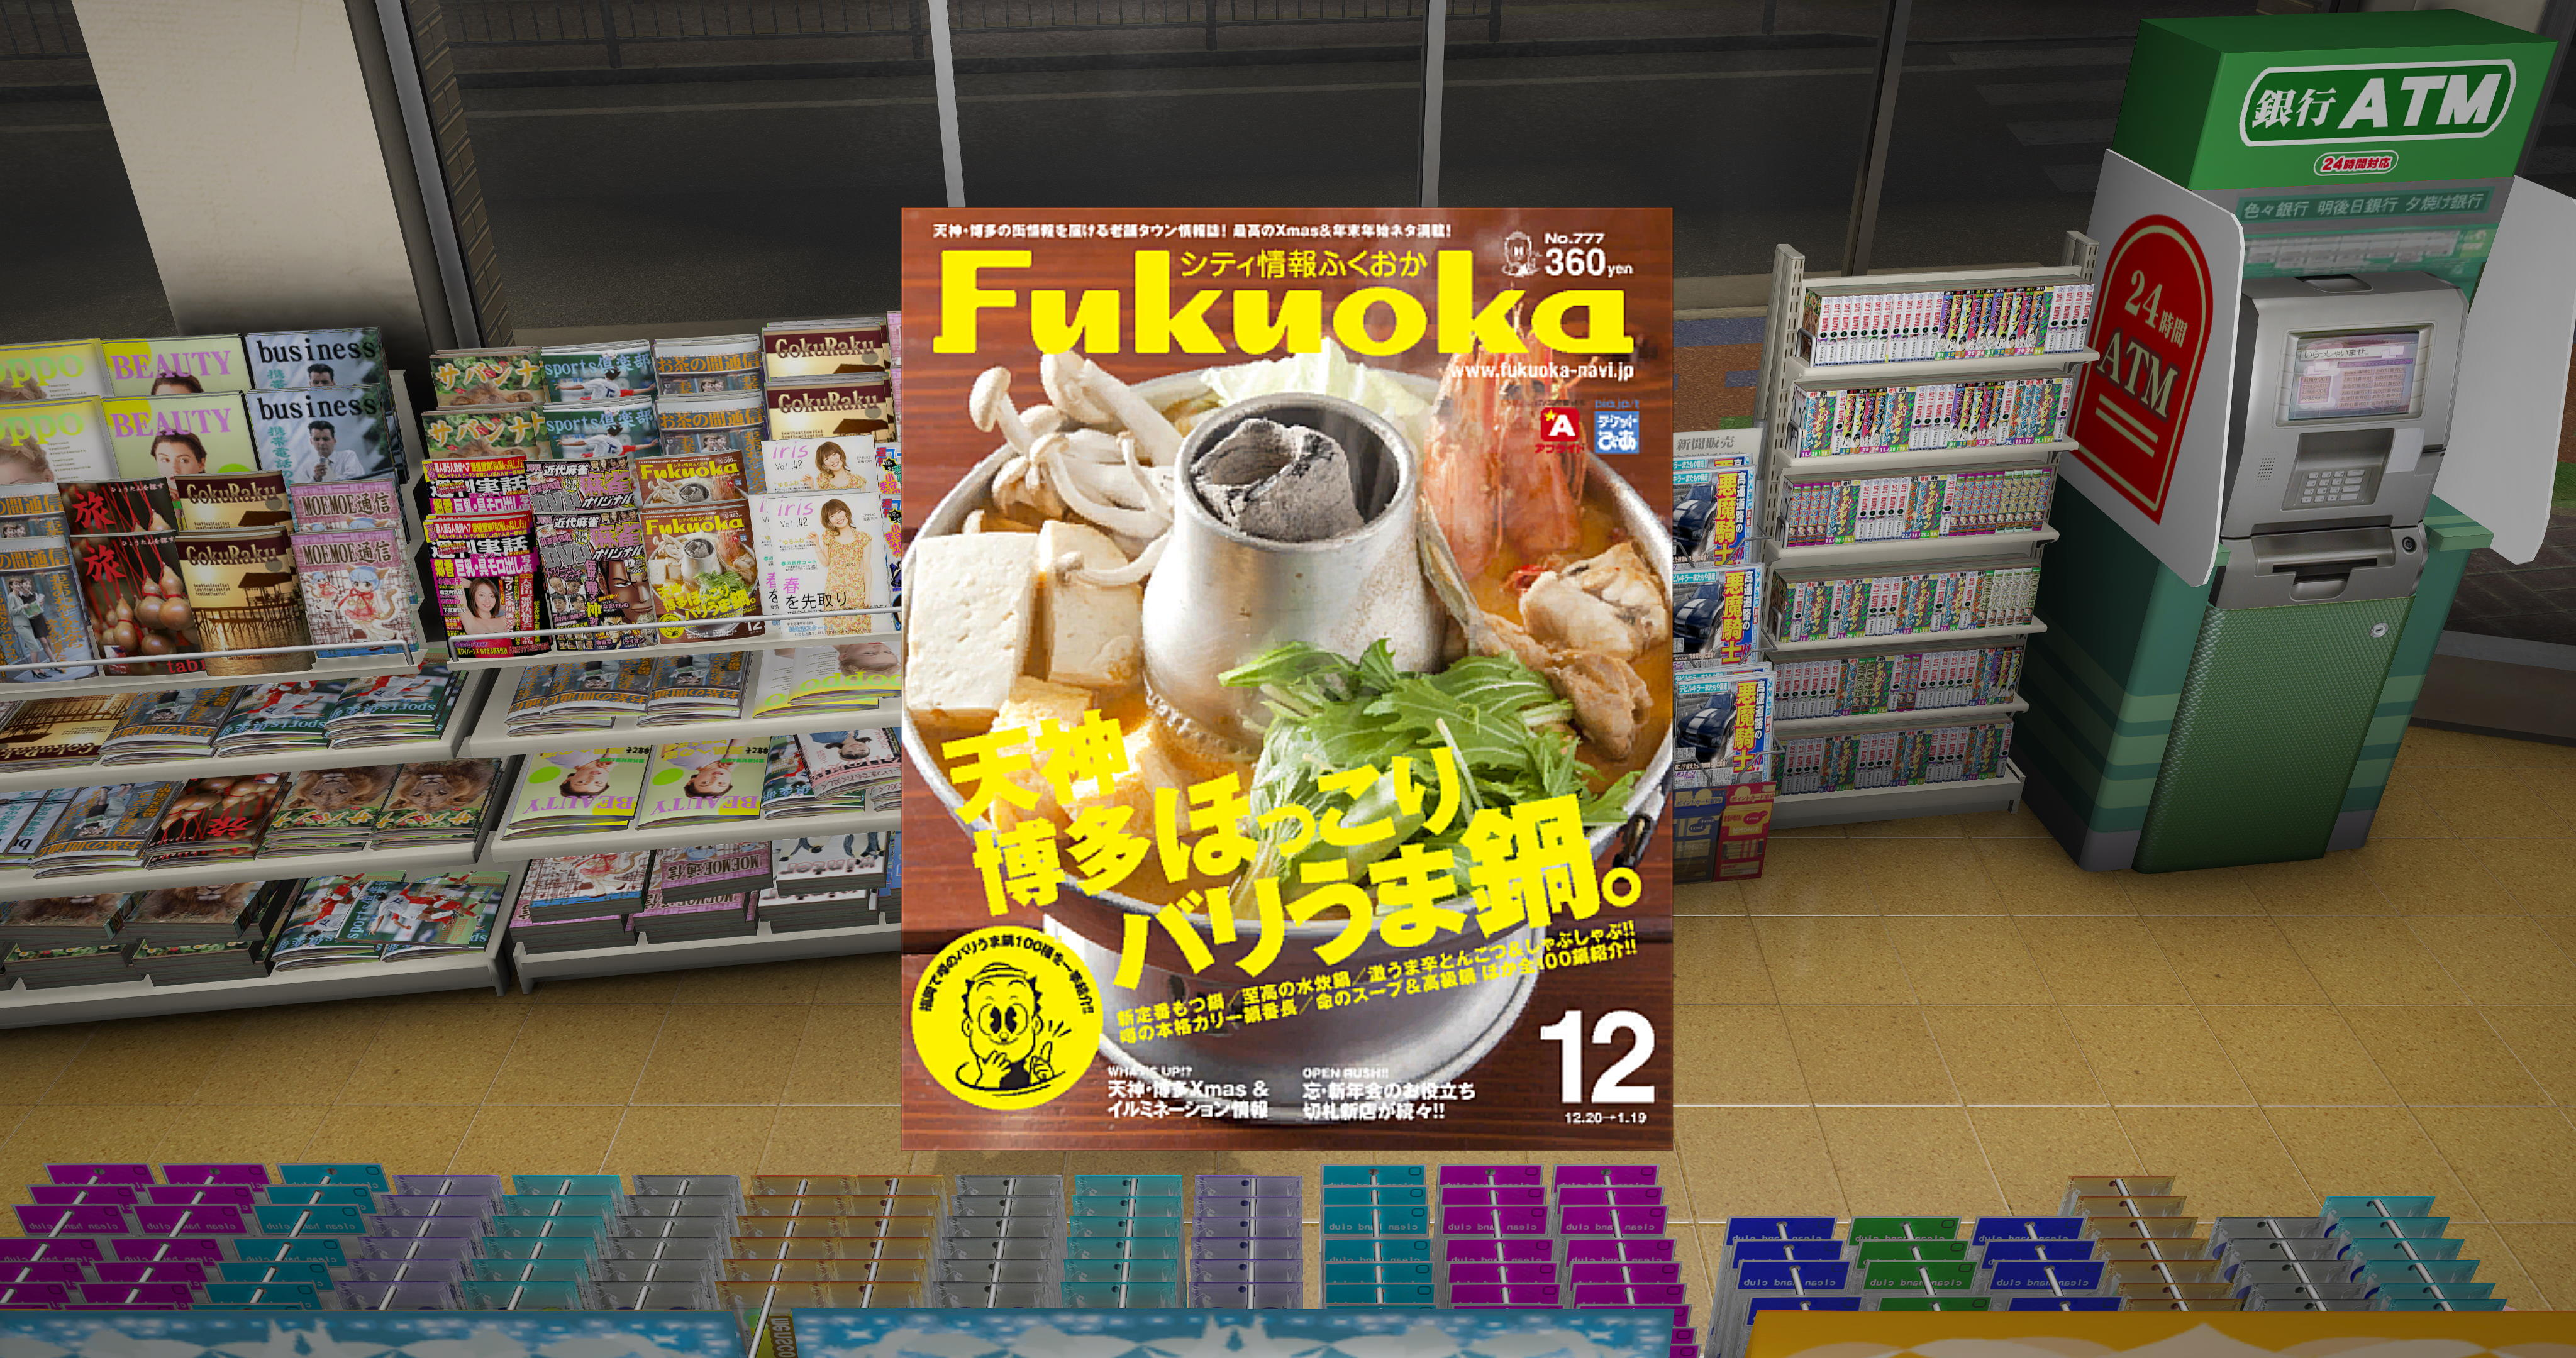 I found this food magazine next to the dirty adult books in a convenience store.